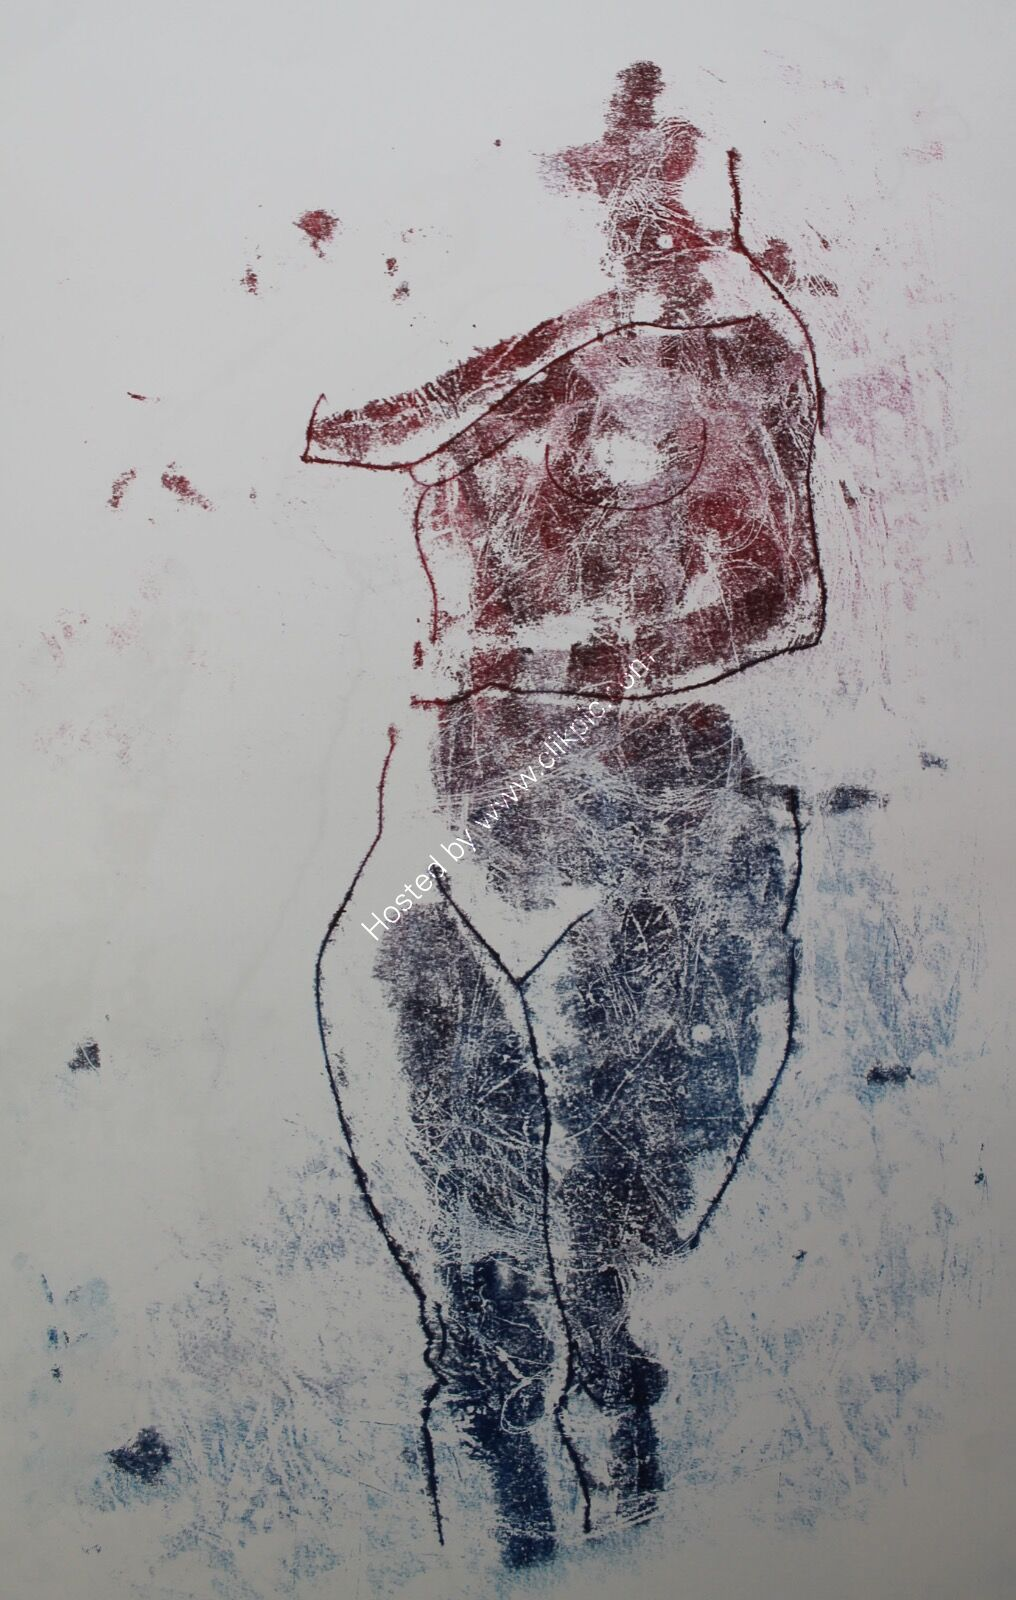 Mono 140. Life study in red & blue.